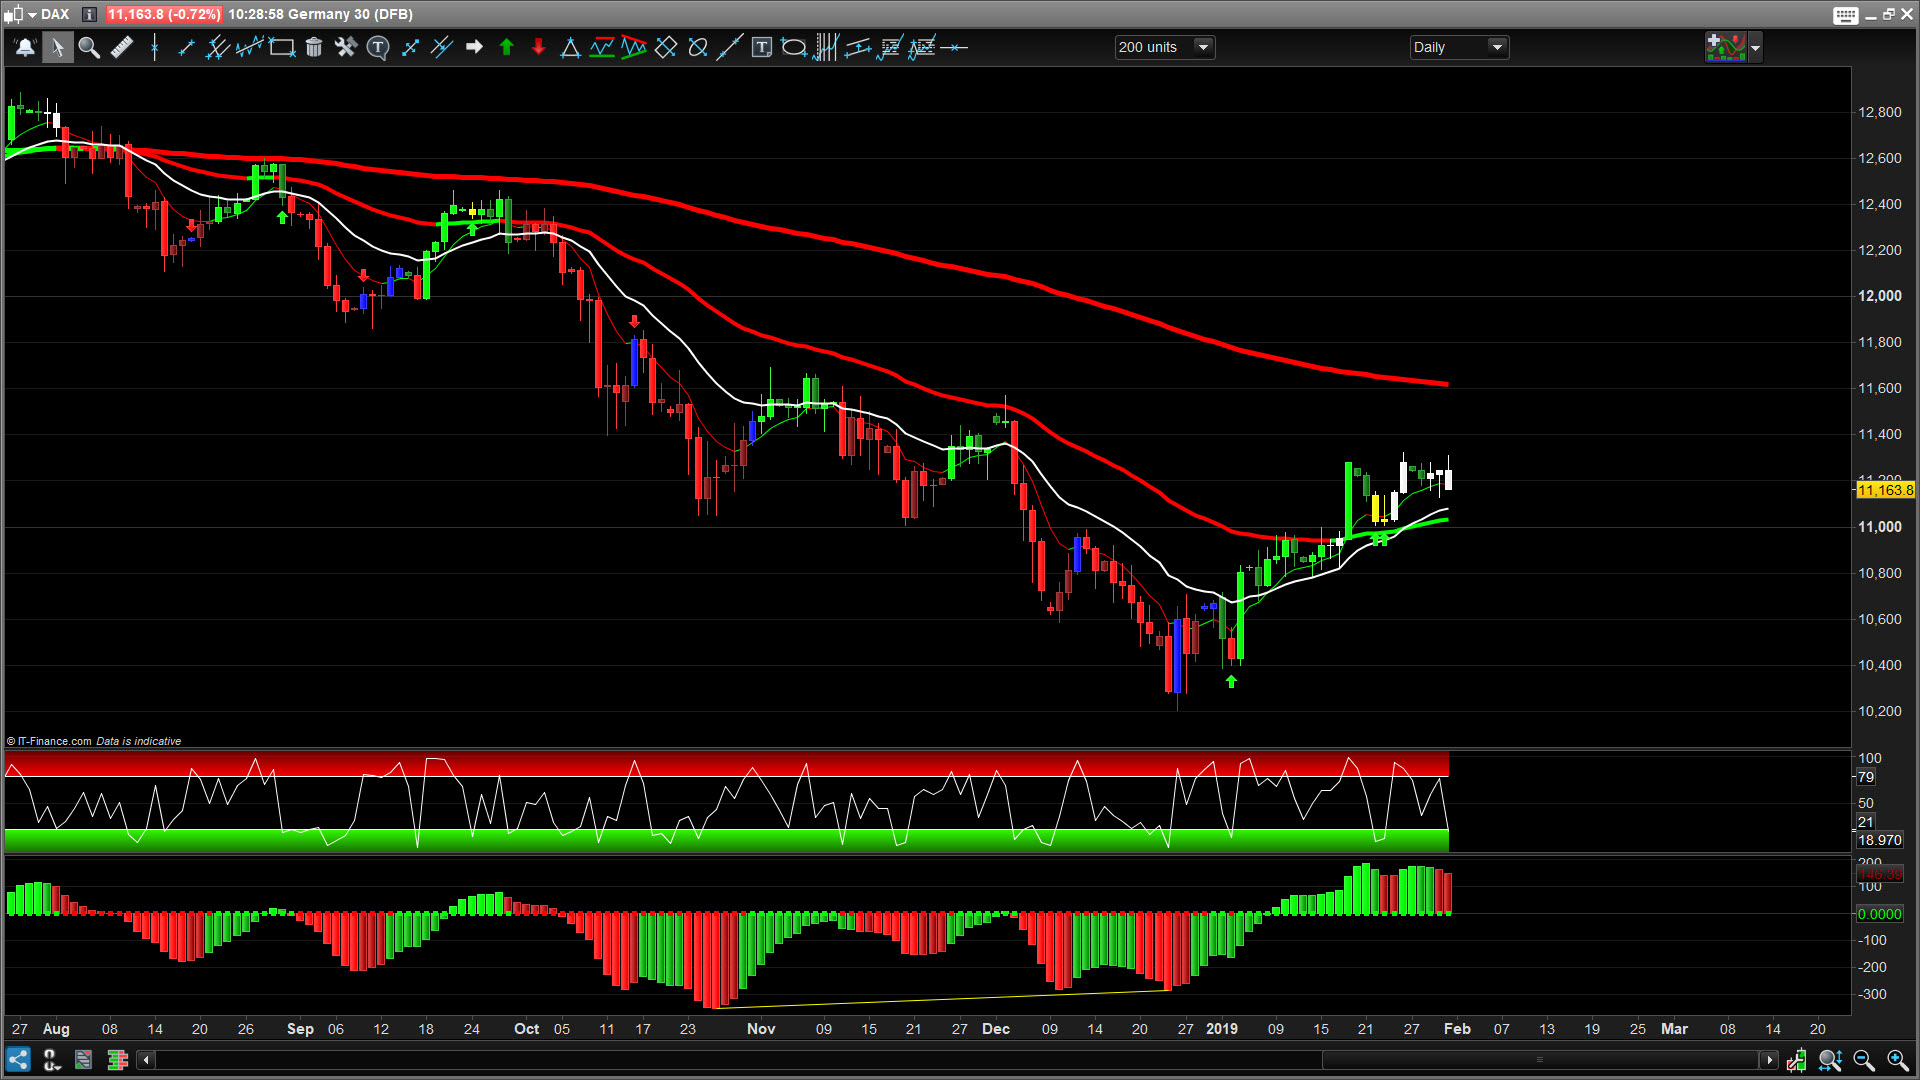 Pro Trading System Signals and Latest Results - Trading College